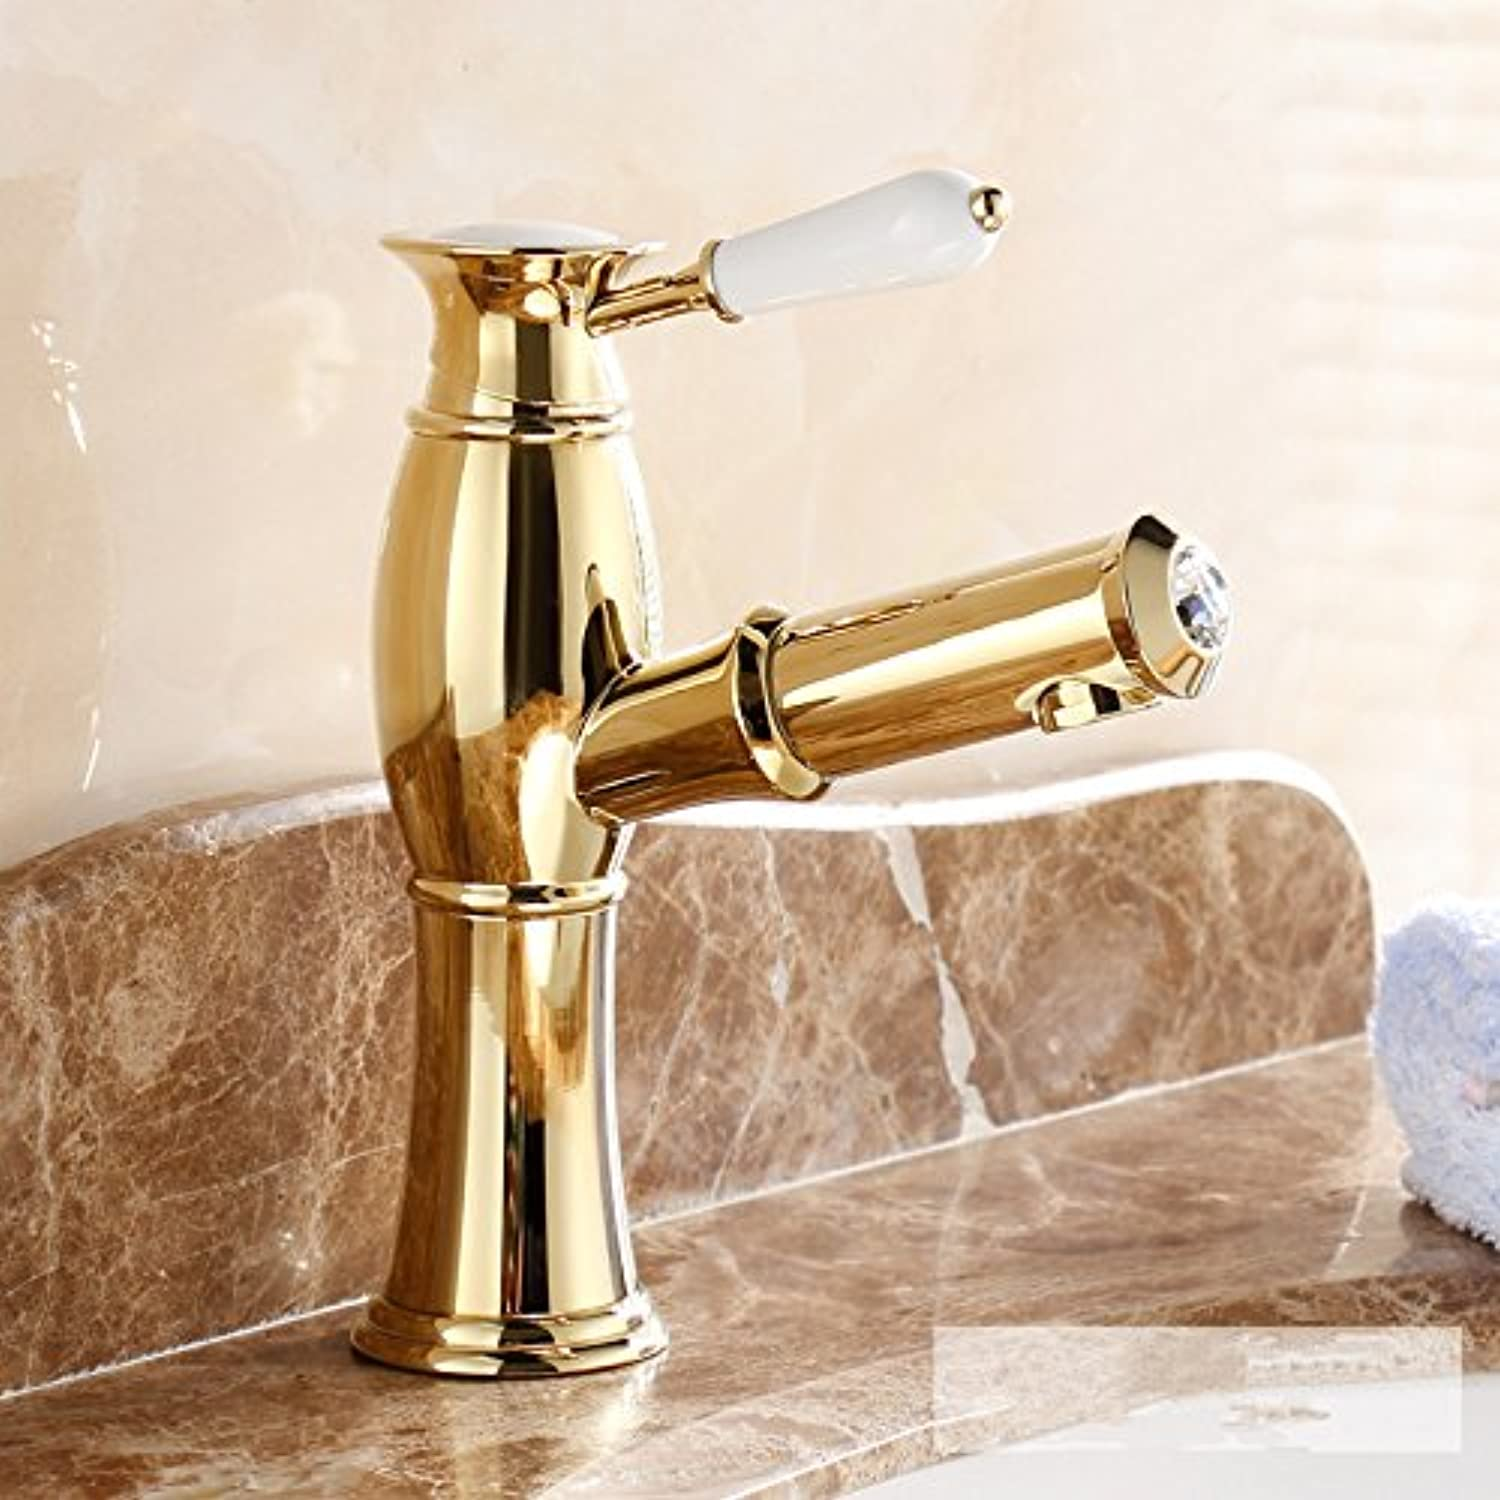 Bijjaladeva Antique Bathroom Sink Vessel Faucet Basin Mixer Tap Pull basin faucet hot and cold gold